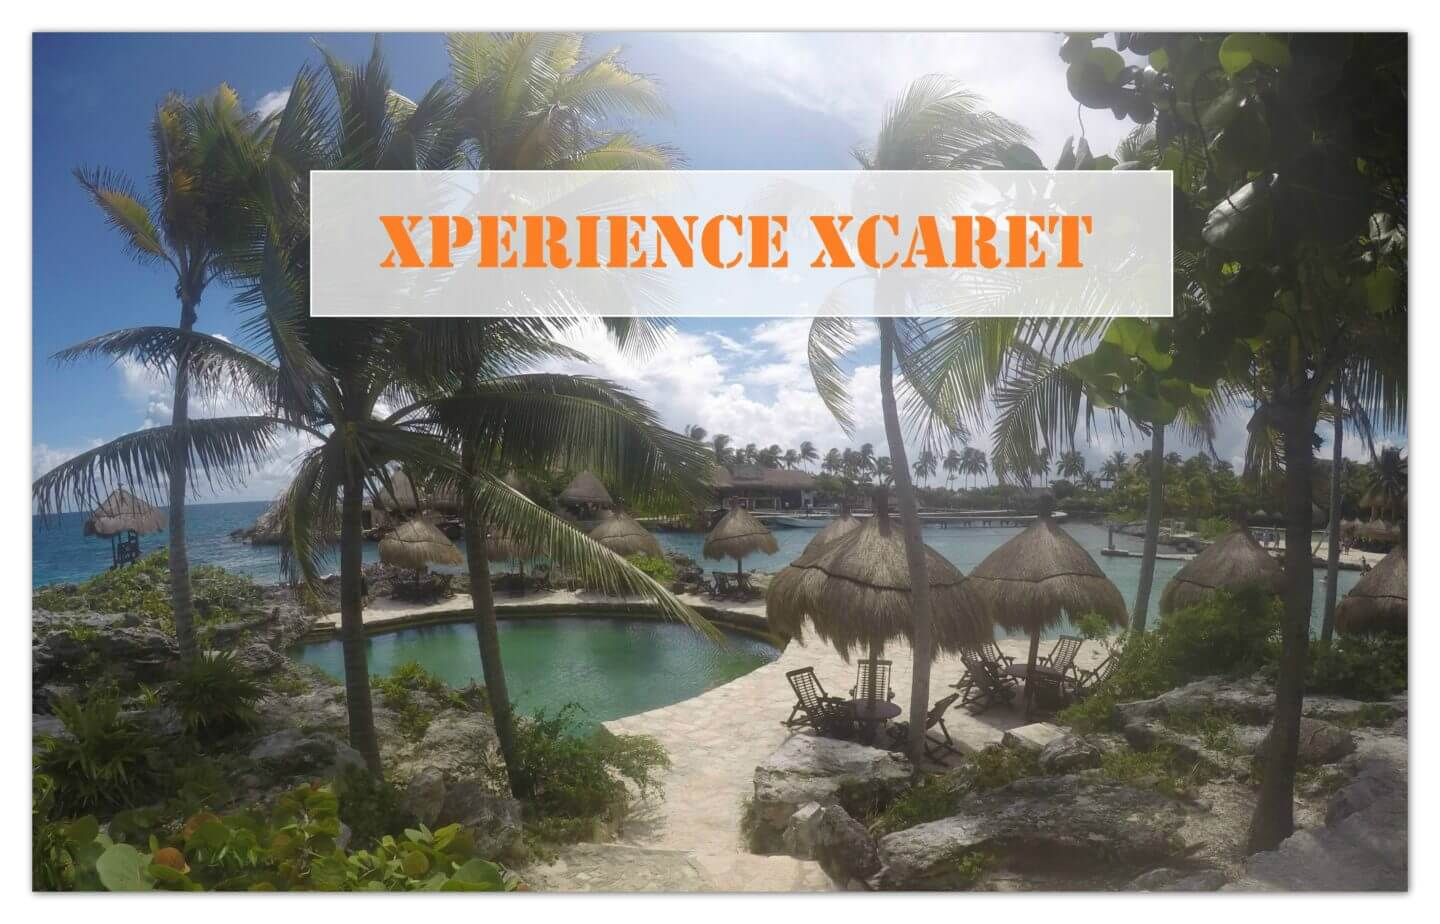 Xperience Xcaret